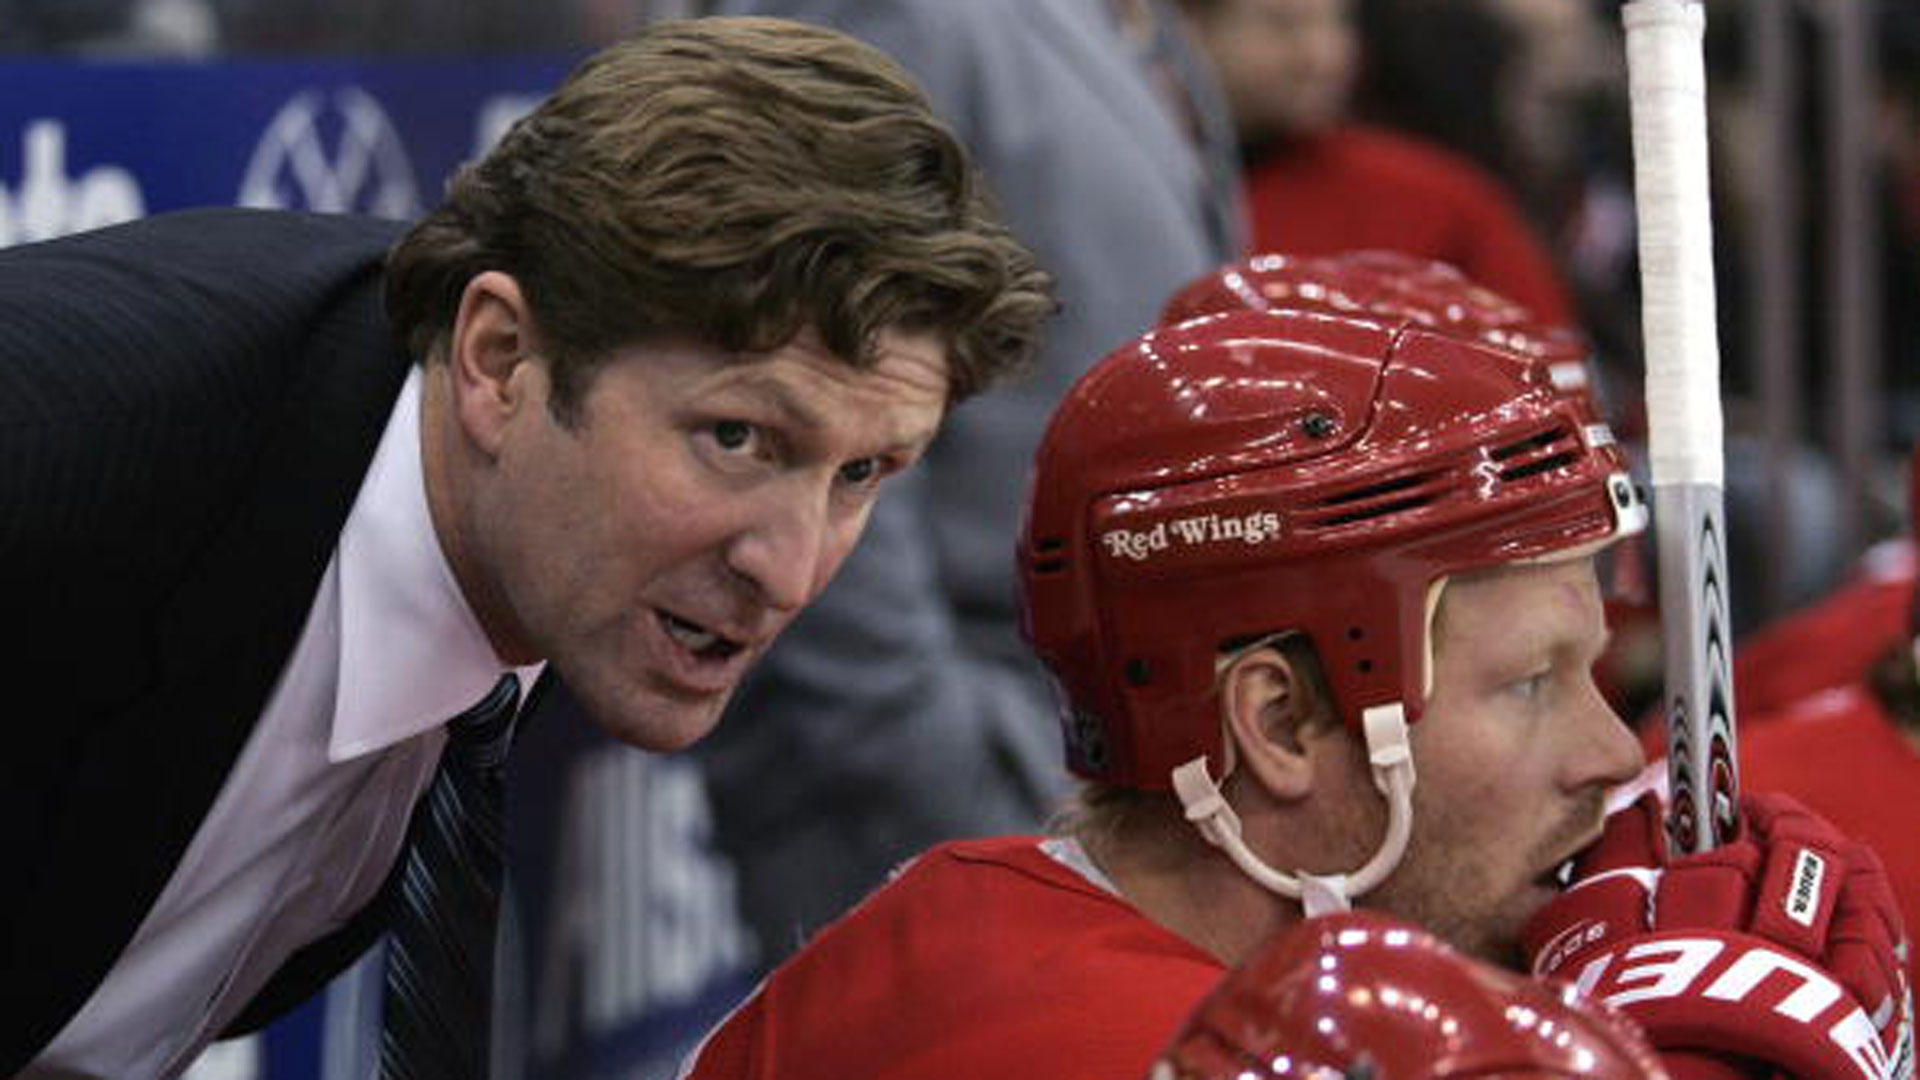 'I don't dispute it for a second': Shanahan on Franzen's comments about Babcock